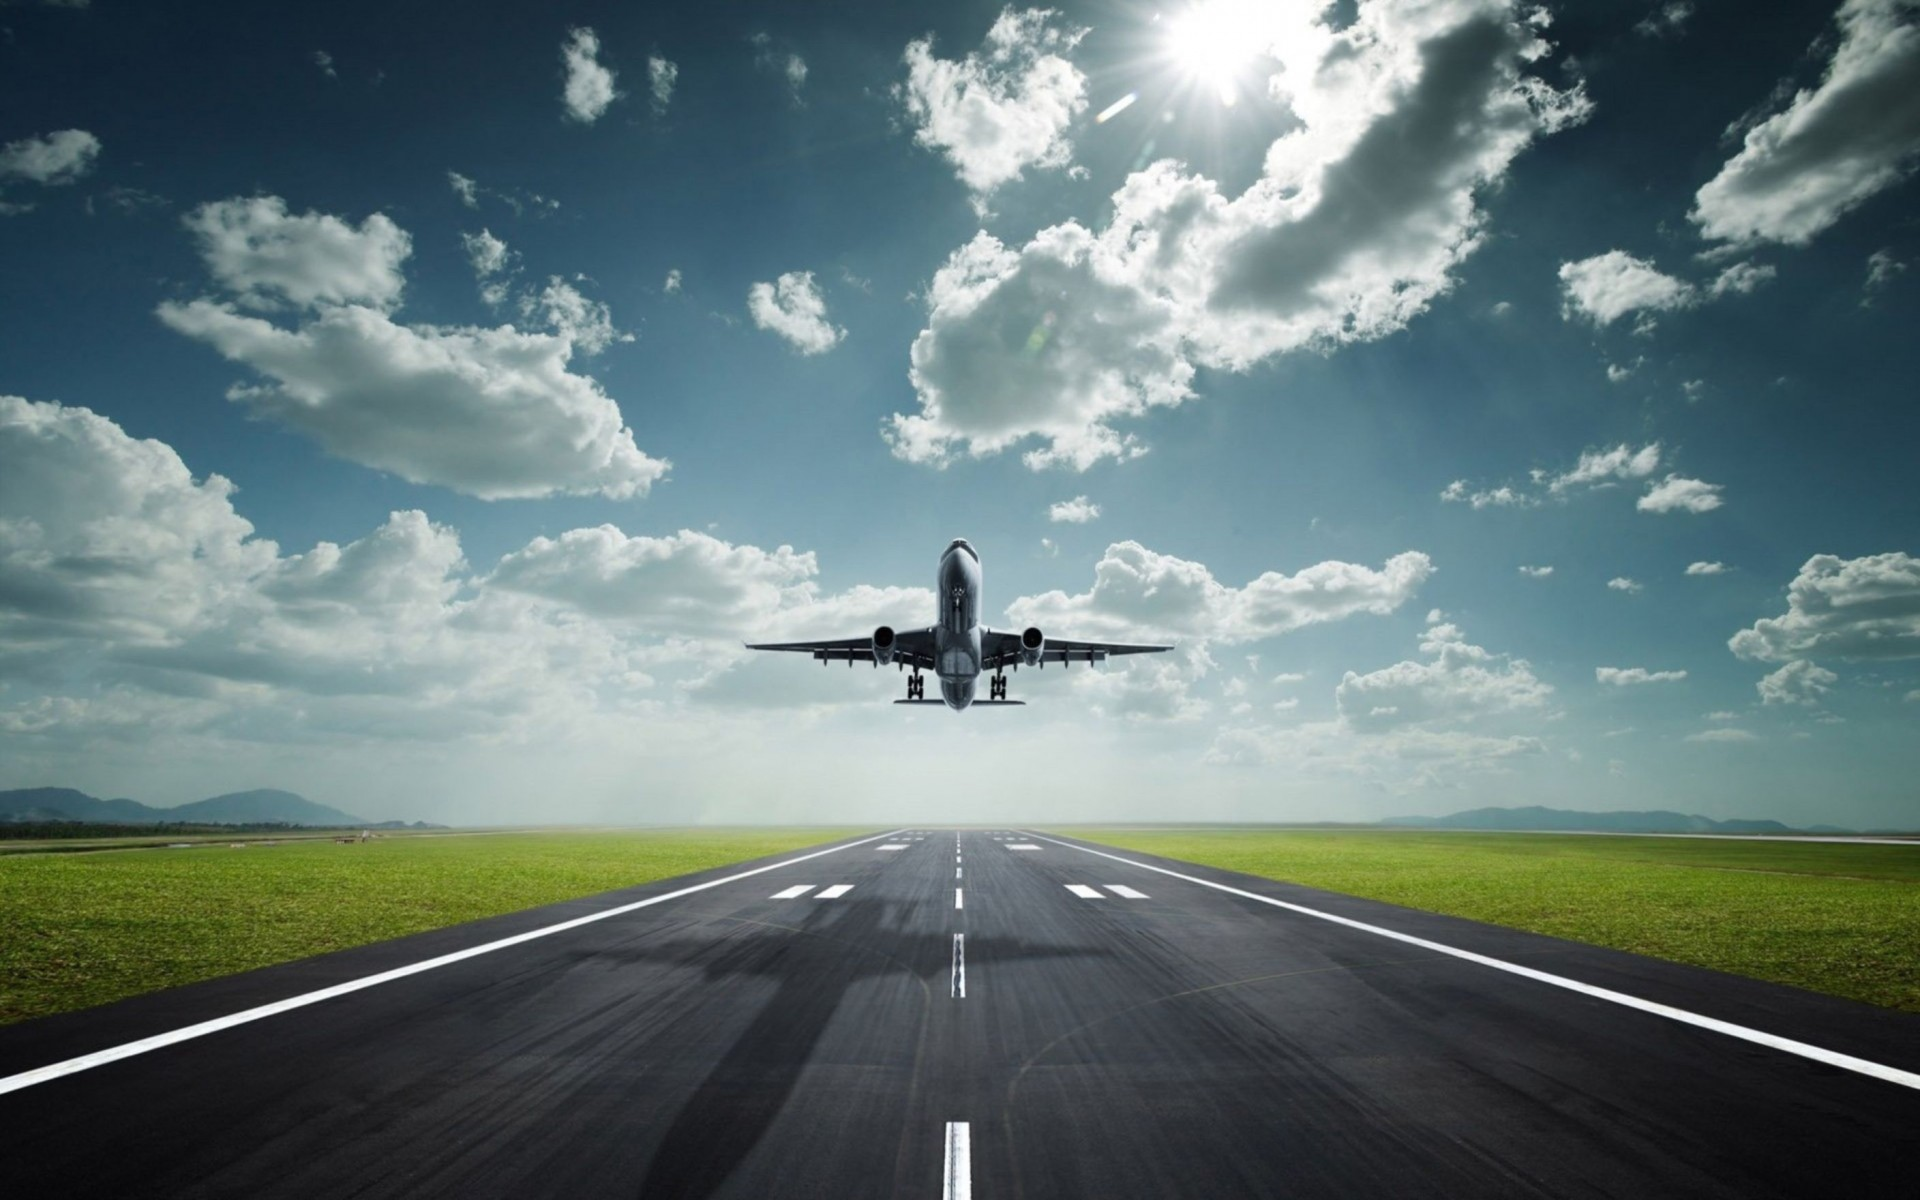 Aircraft Take Off Wallpaper